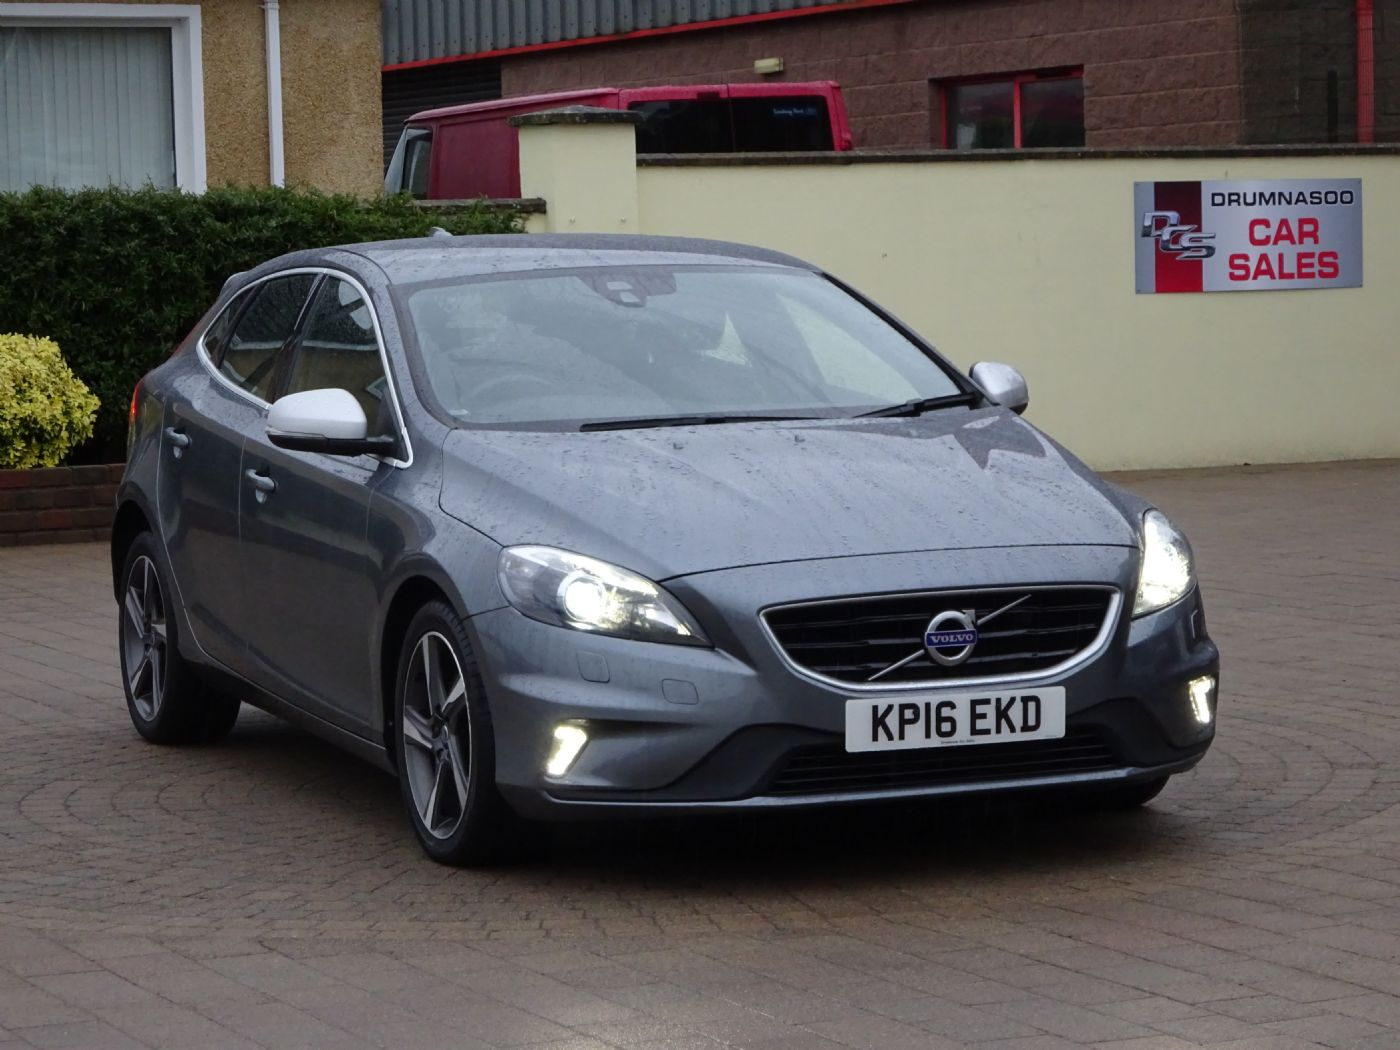 Volvo V40 2.0 R-Design Lux Nav D4, Leather, Sat nav, Zero road tax